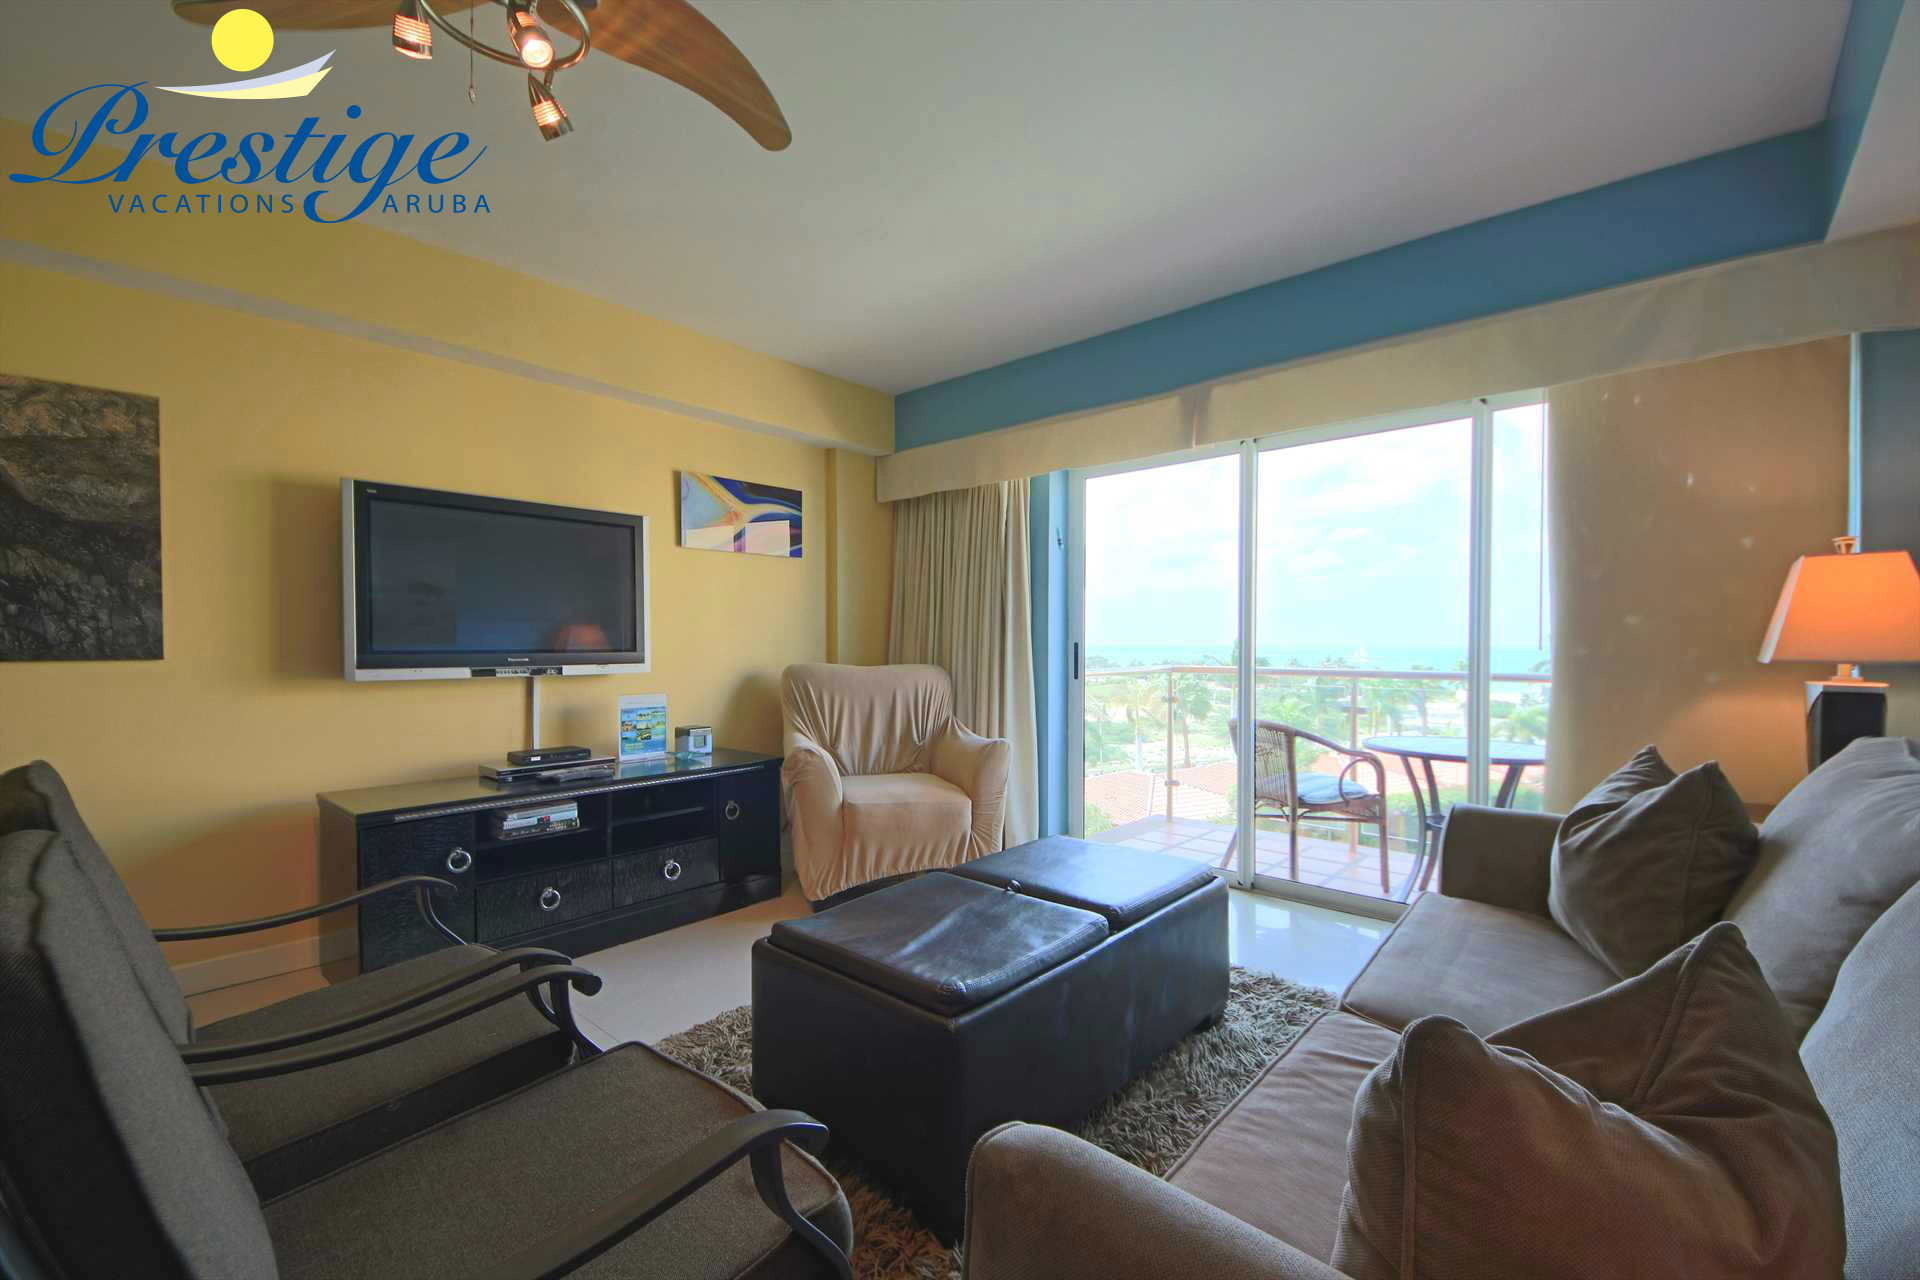 TV in living area with ocean view